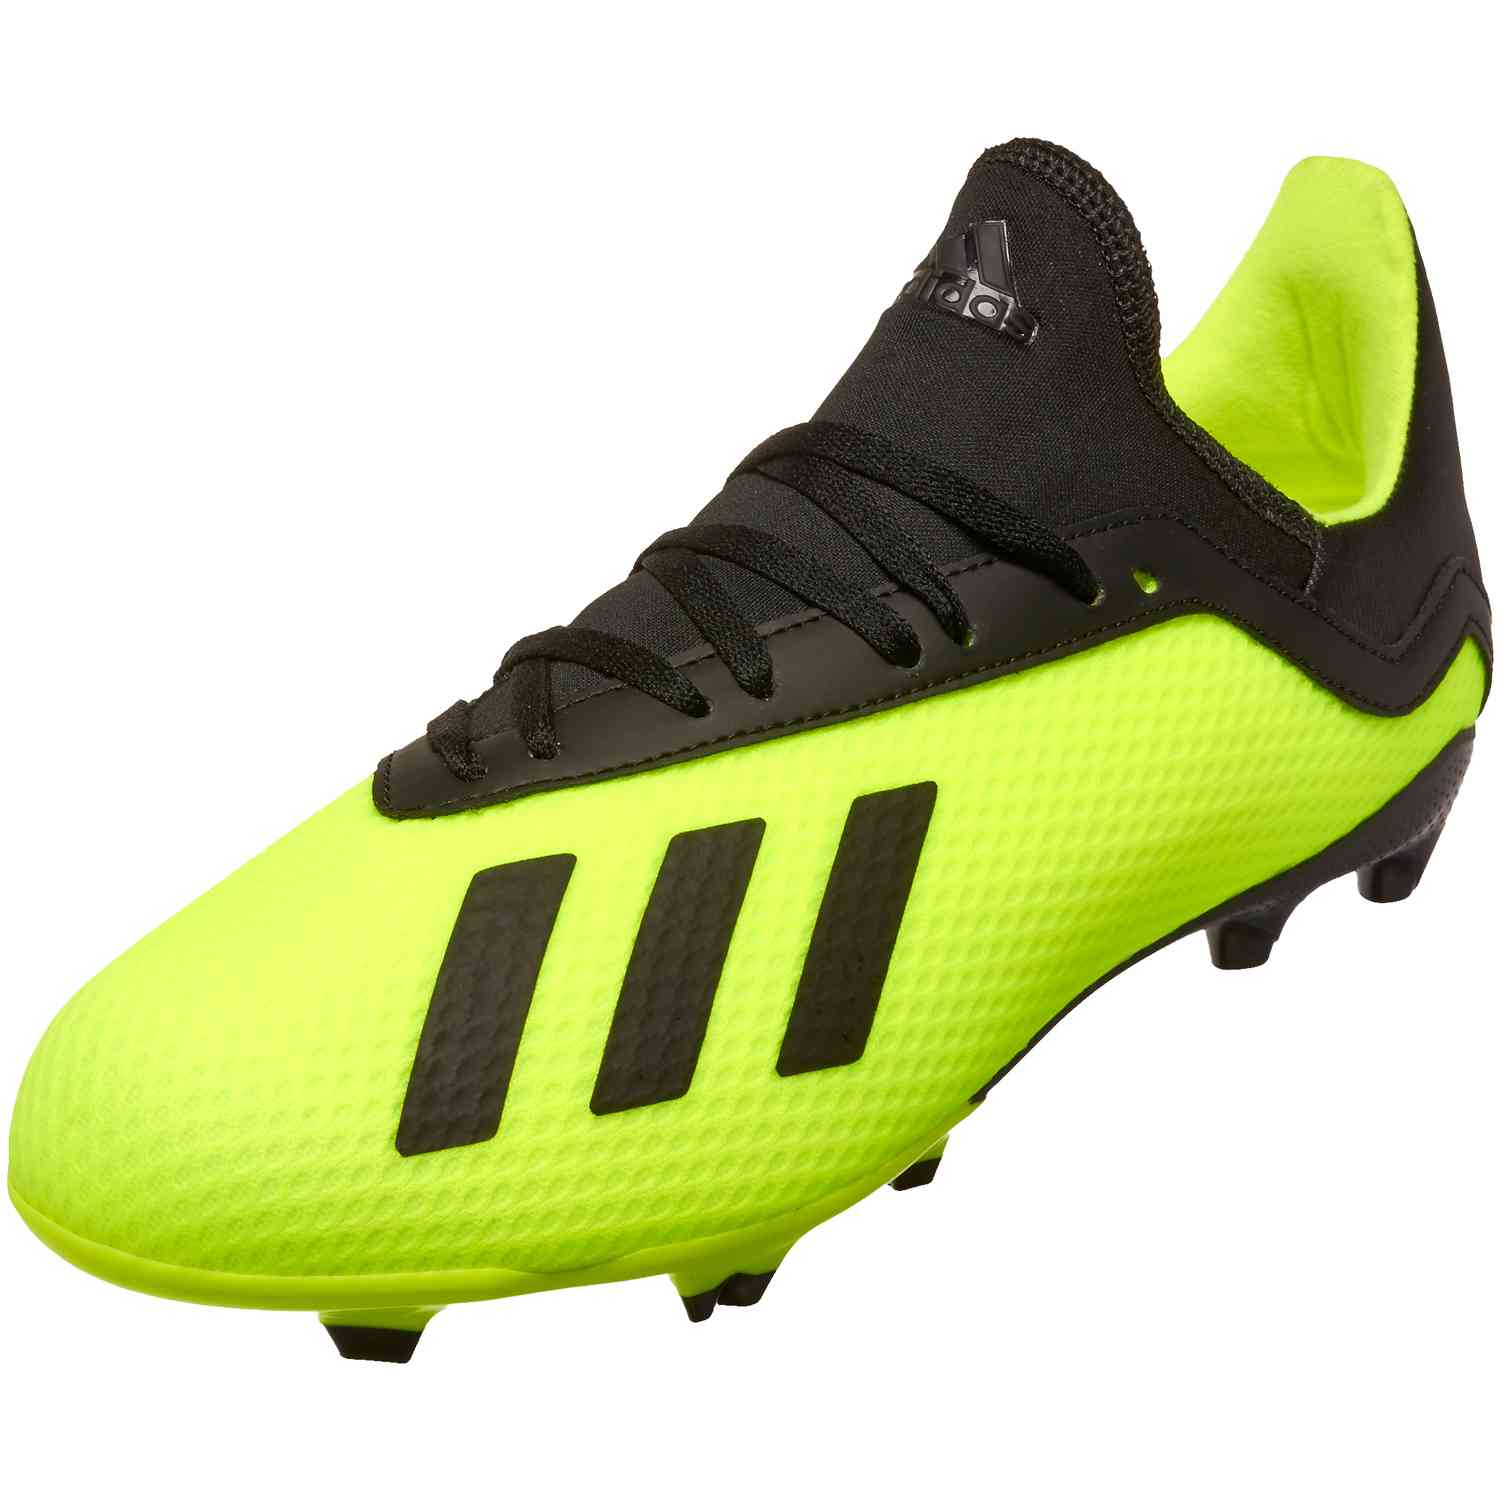 0760937c8 adidas X18.3 FG Soccer CleatJ - Solar Yellow Black